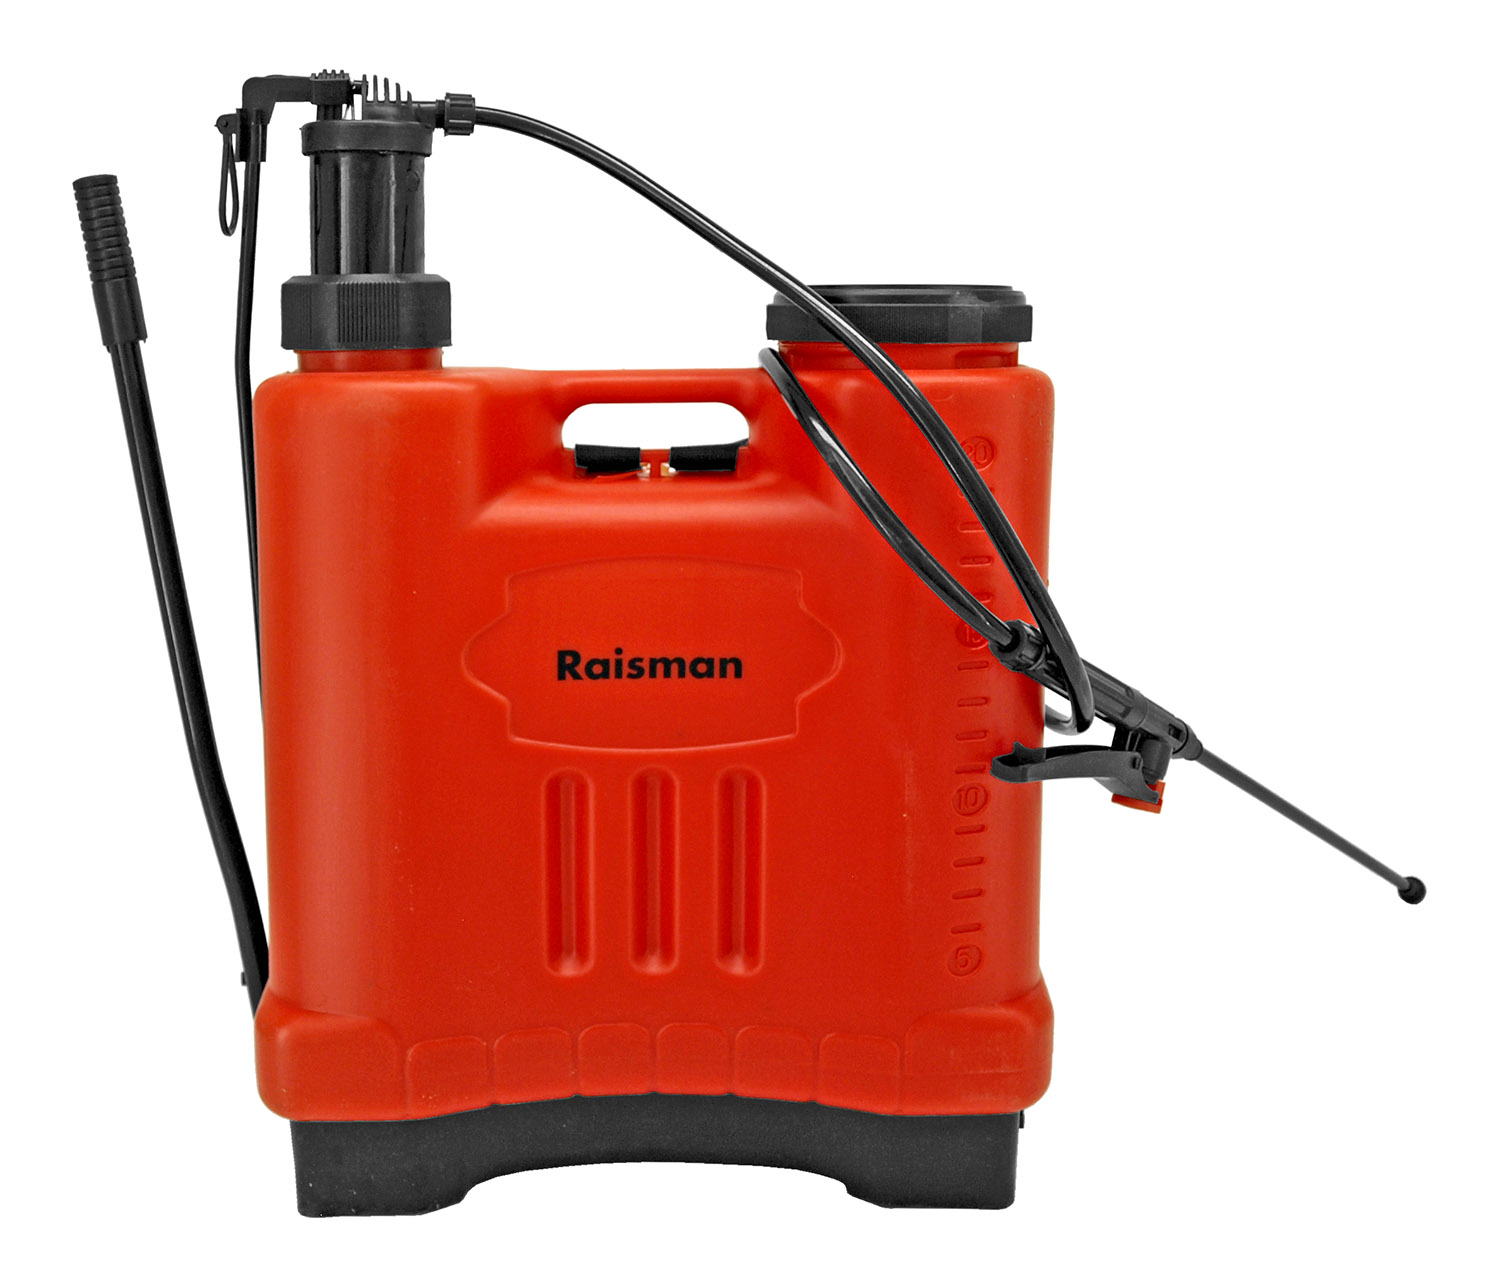 4 Gallon Raisman Manual Sprayer